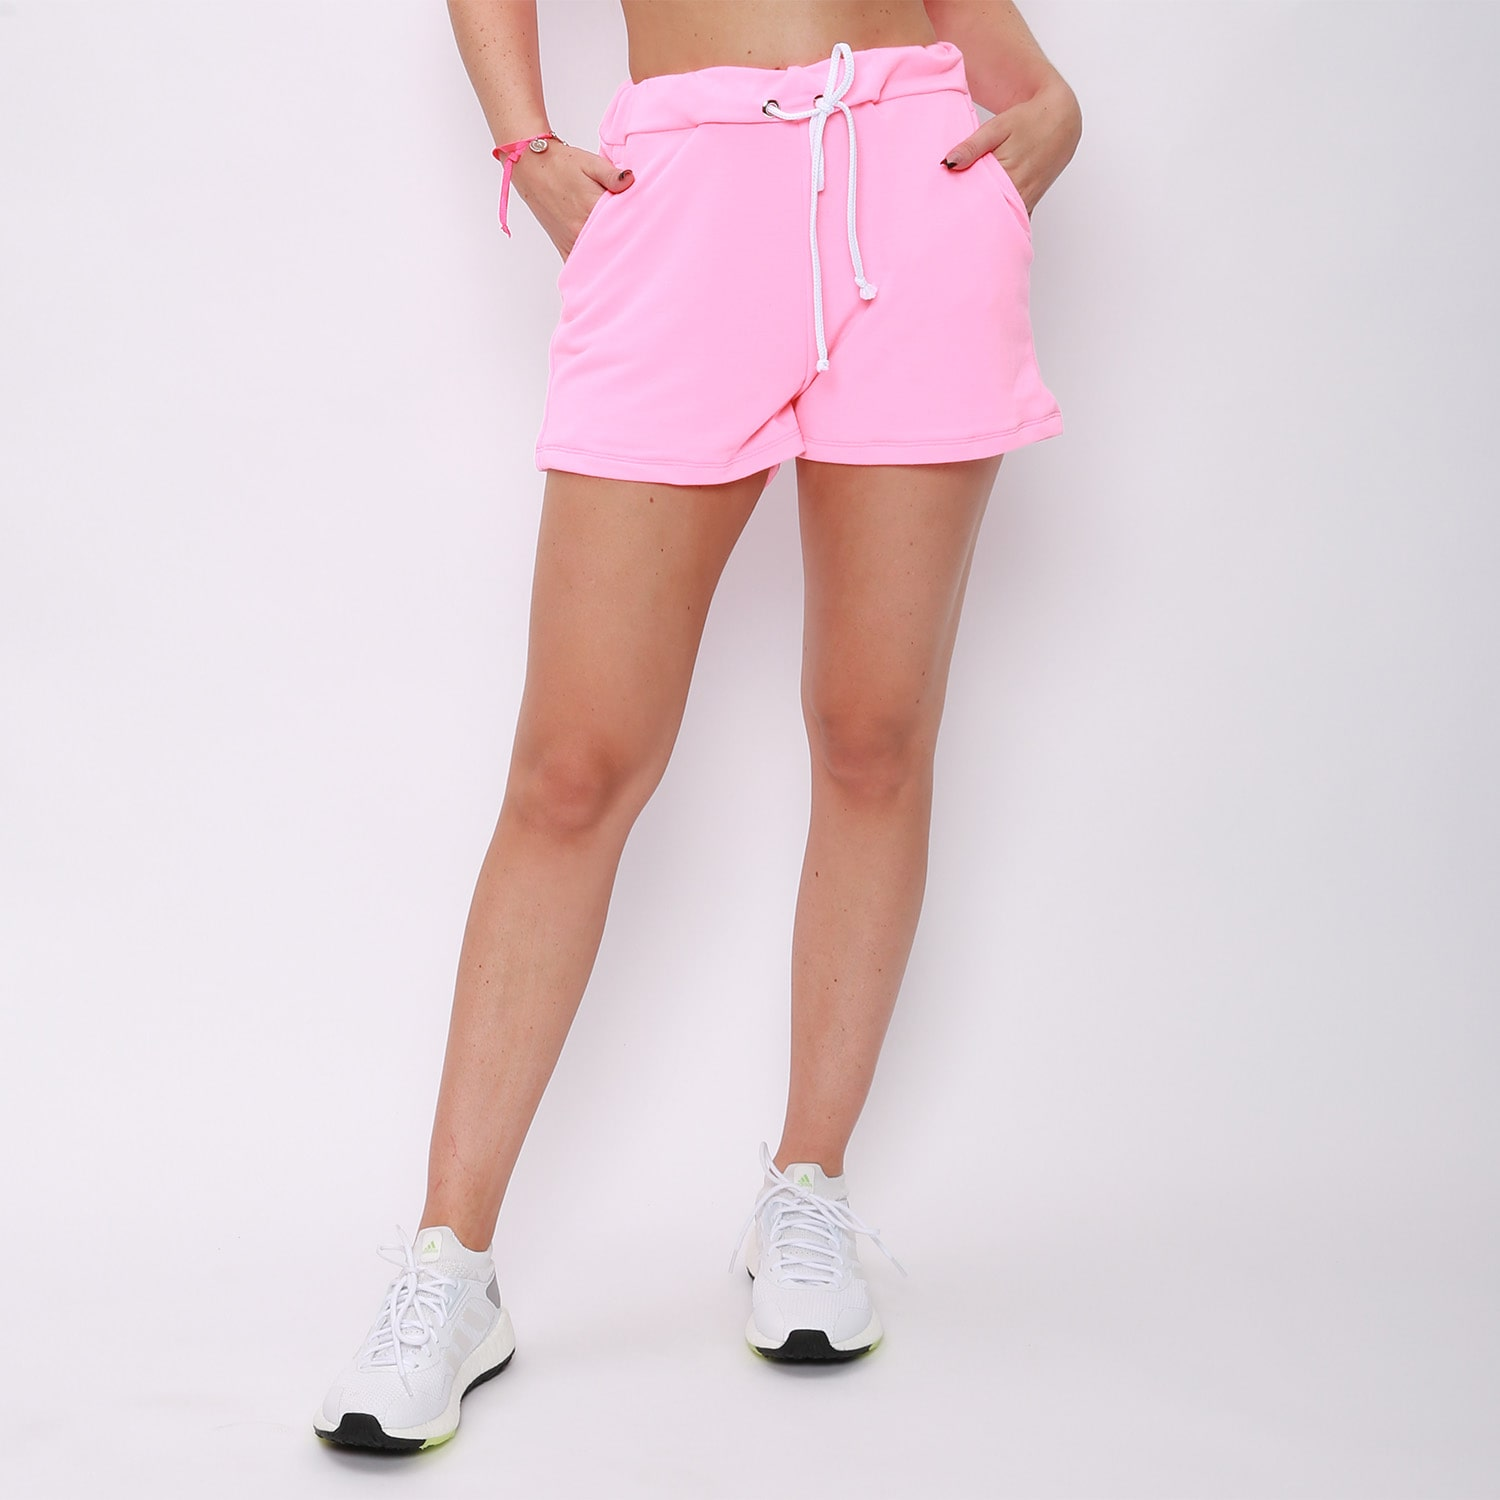 SHORTS ROSA NEON FIERCE